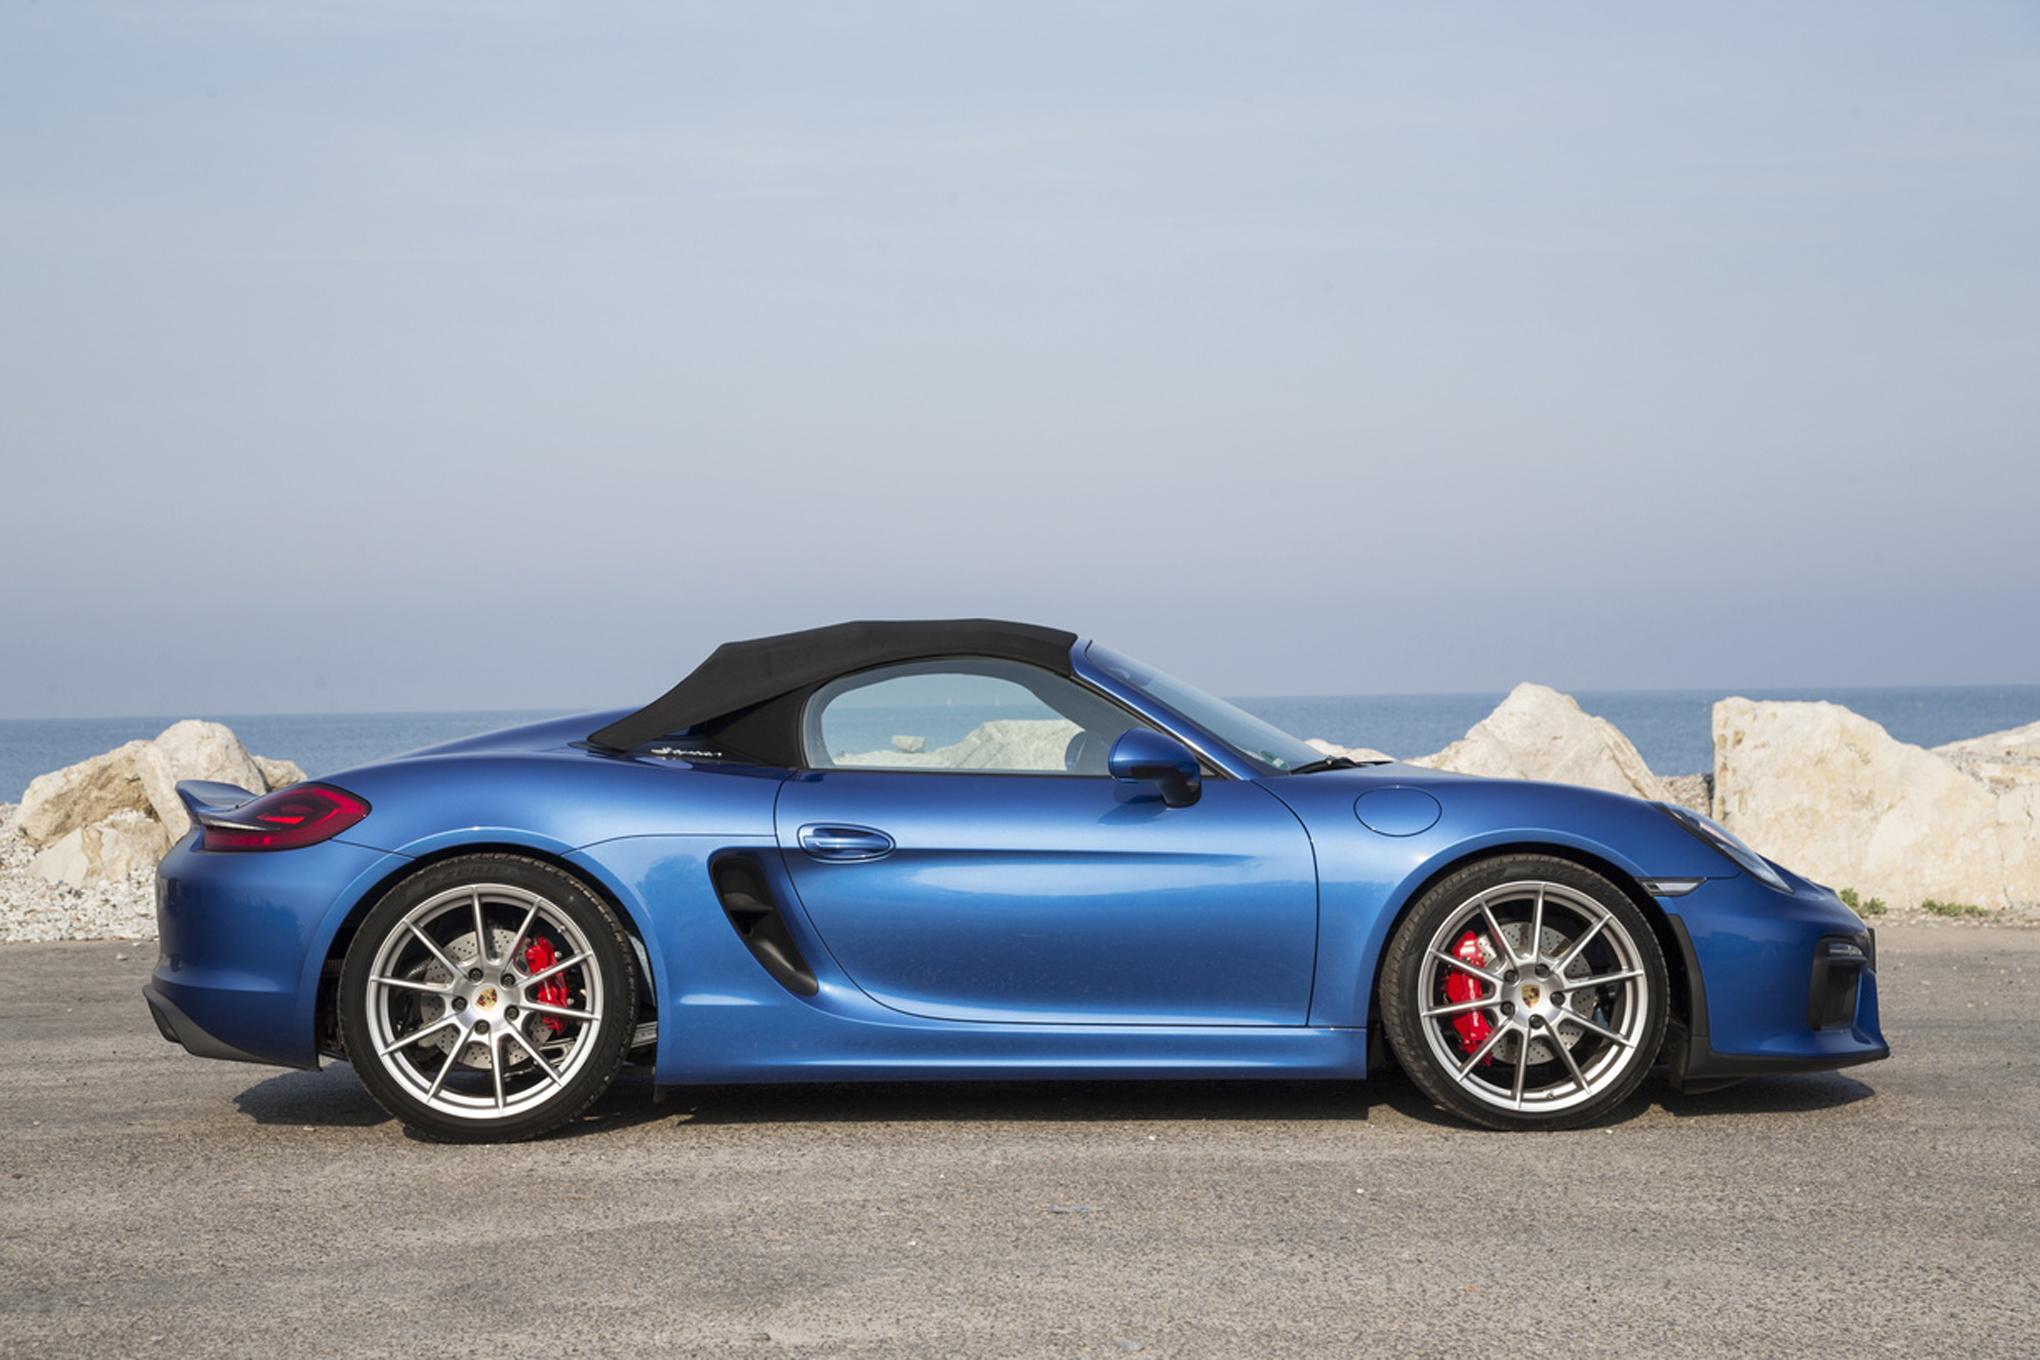 Vehicle Dynamics International awards for Porsche